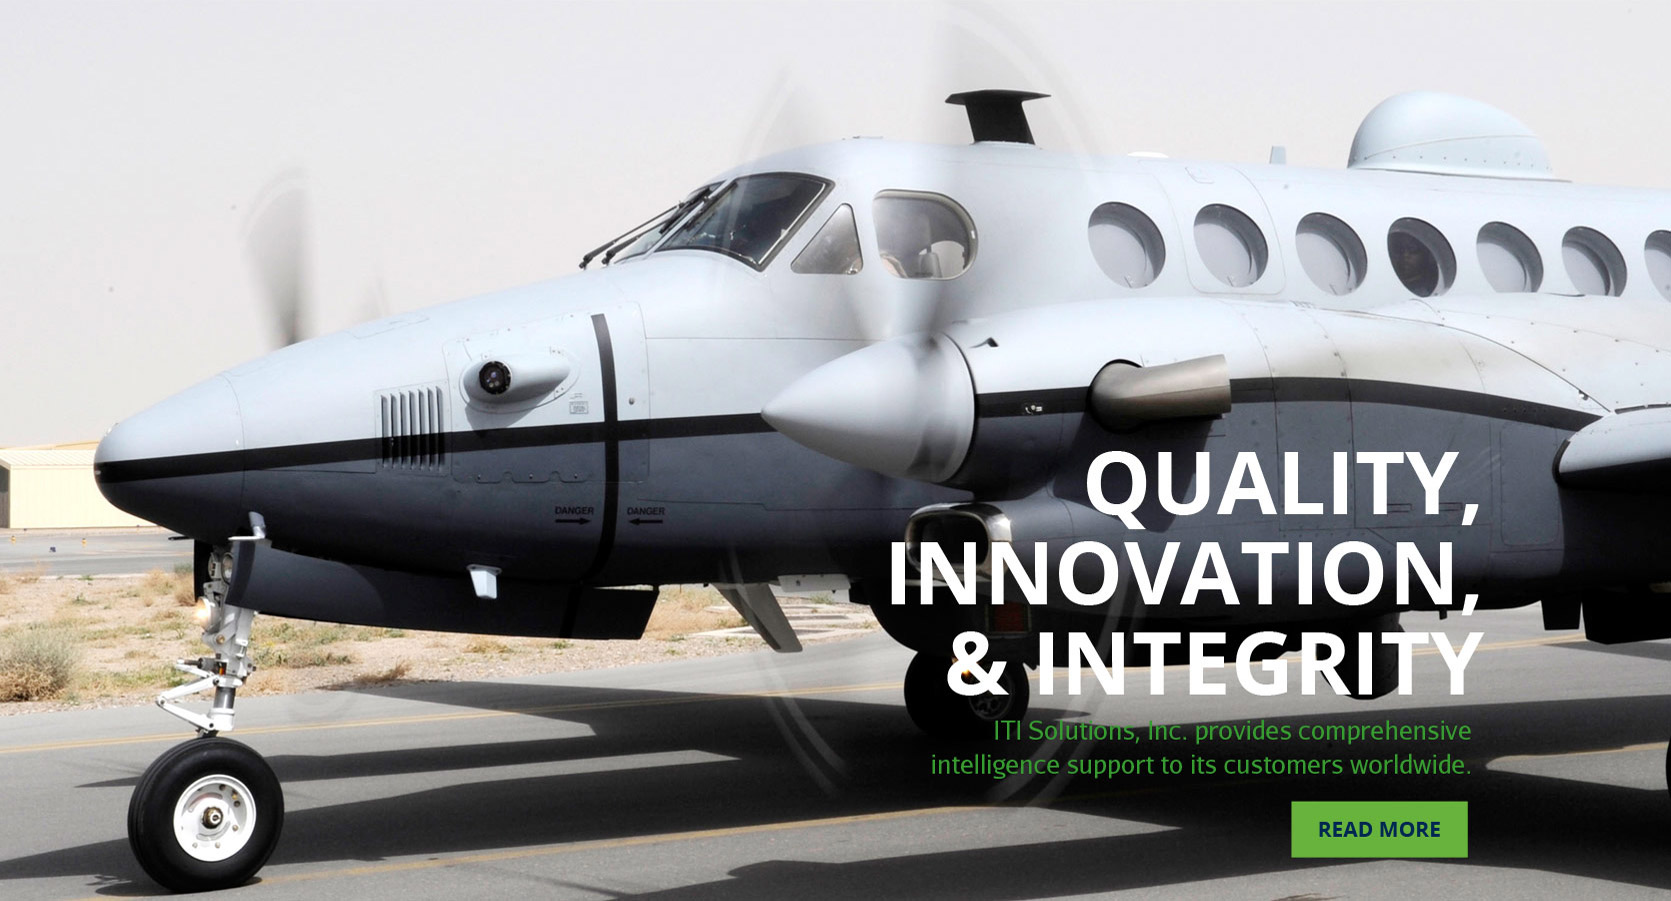 Quality, Innovation & Integrity